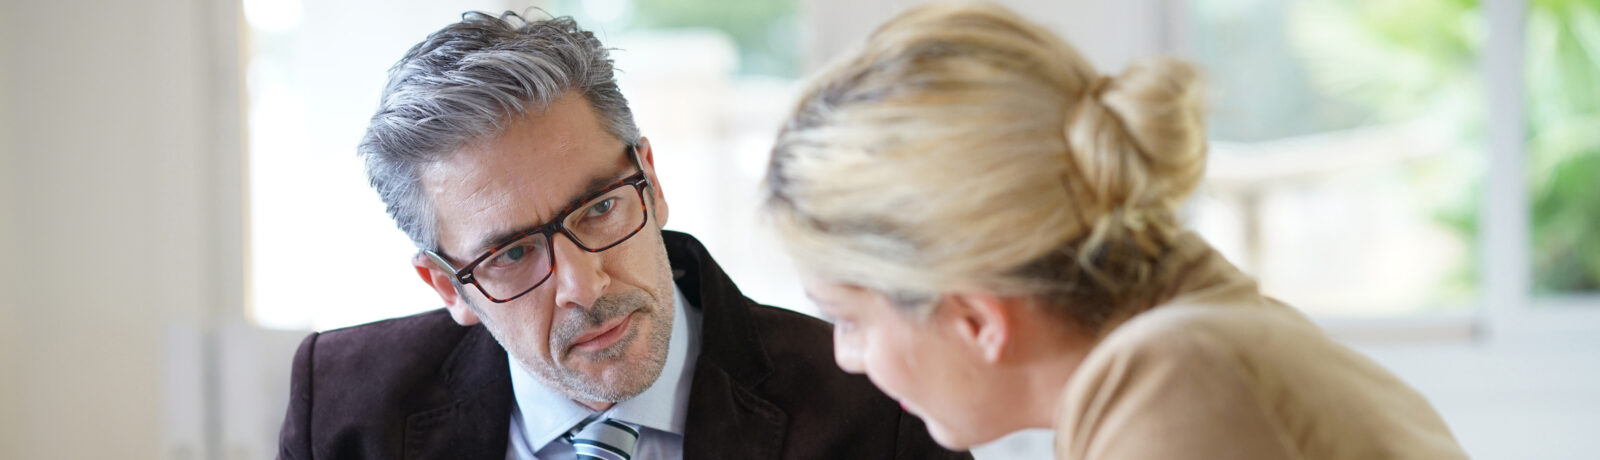 Financial adviser working with a client.